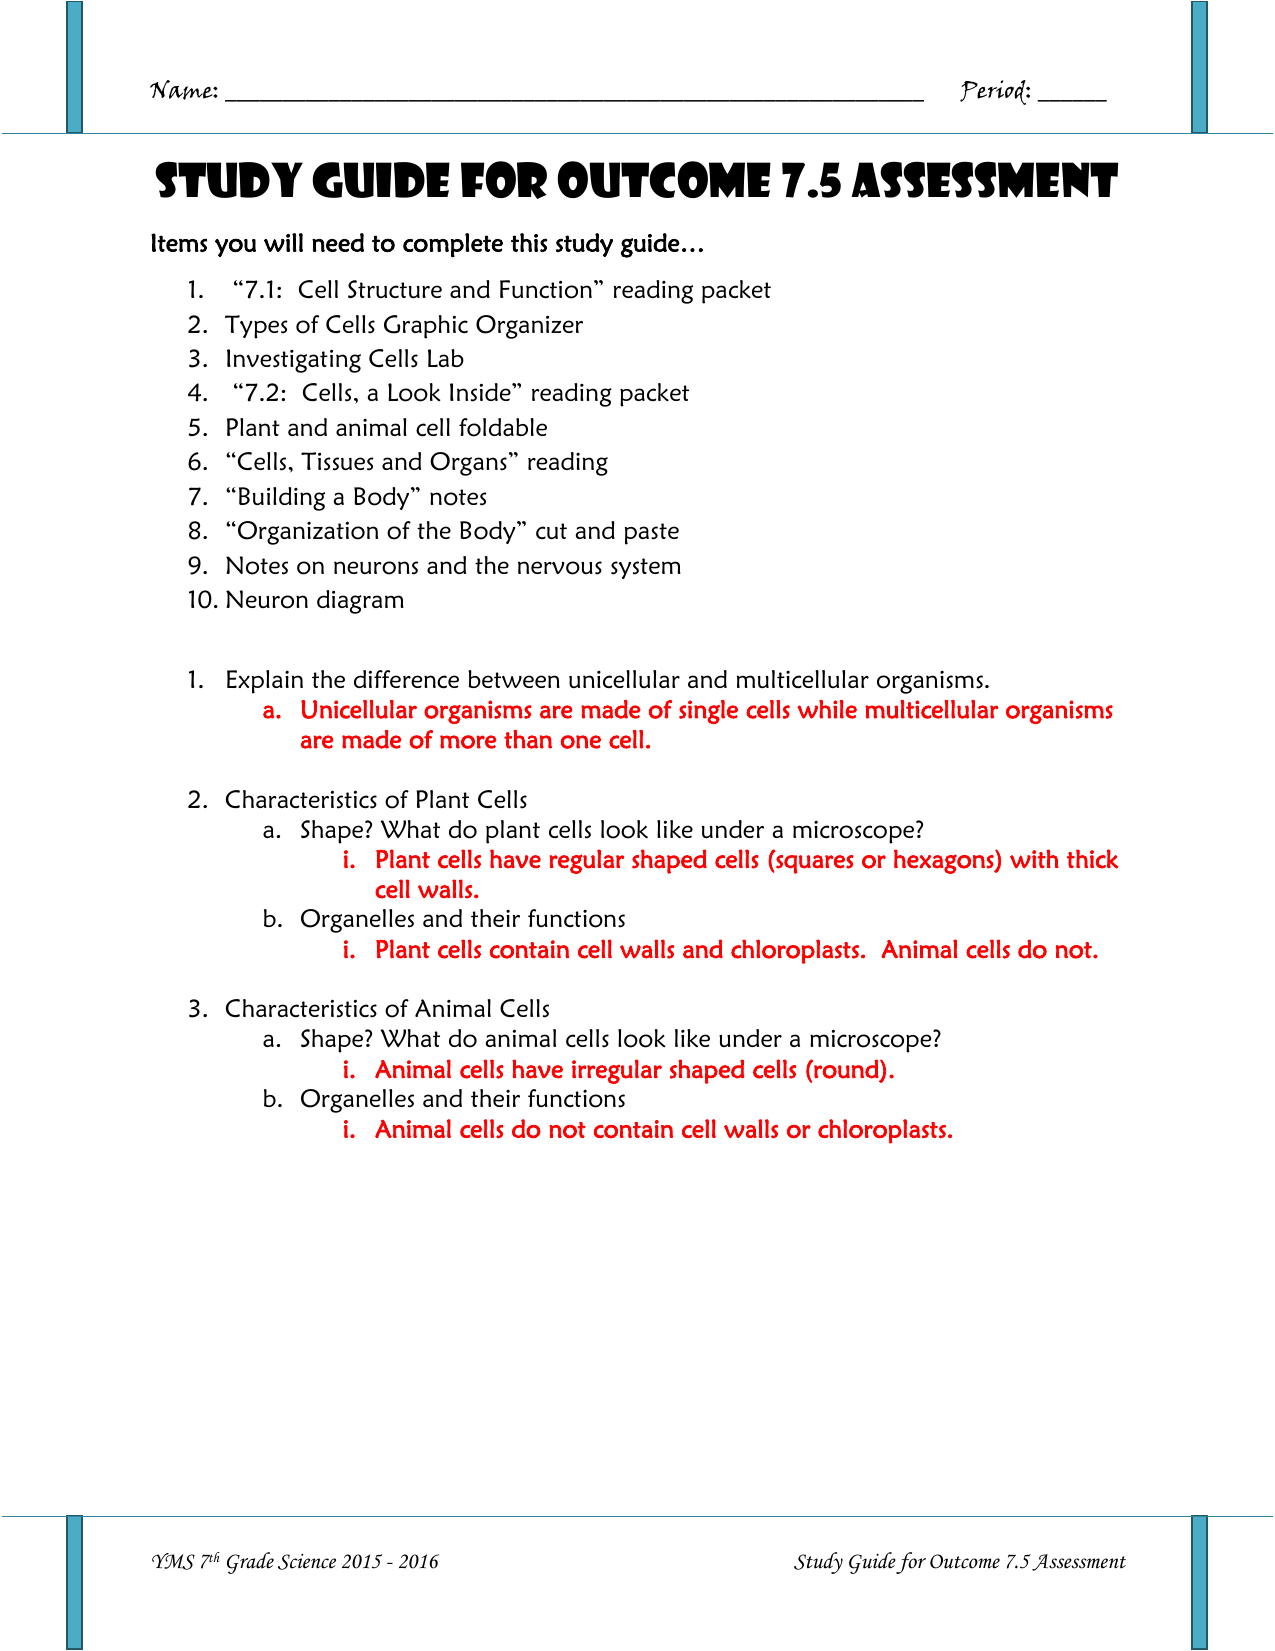 Outcome 7 5 Assessment Study Guide ANSWER